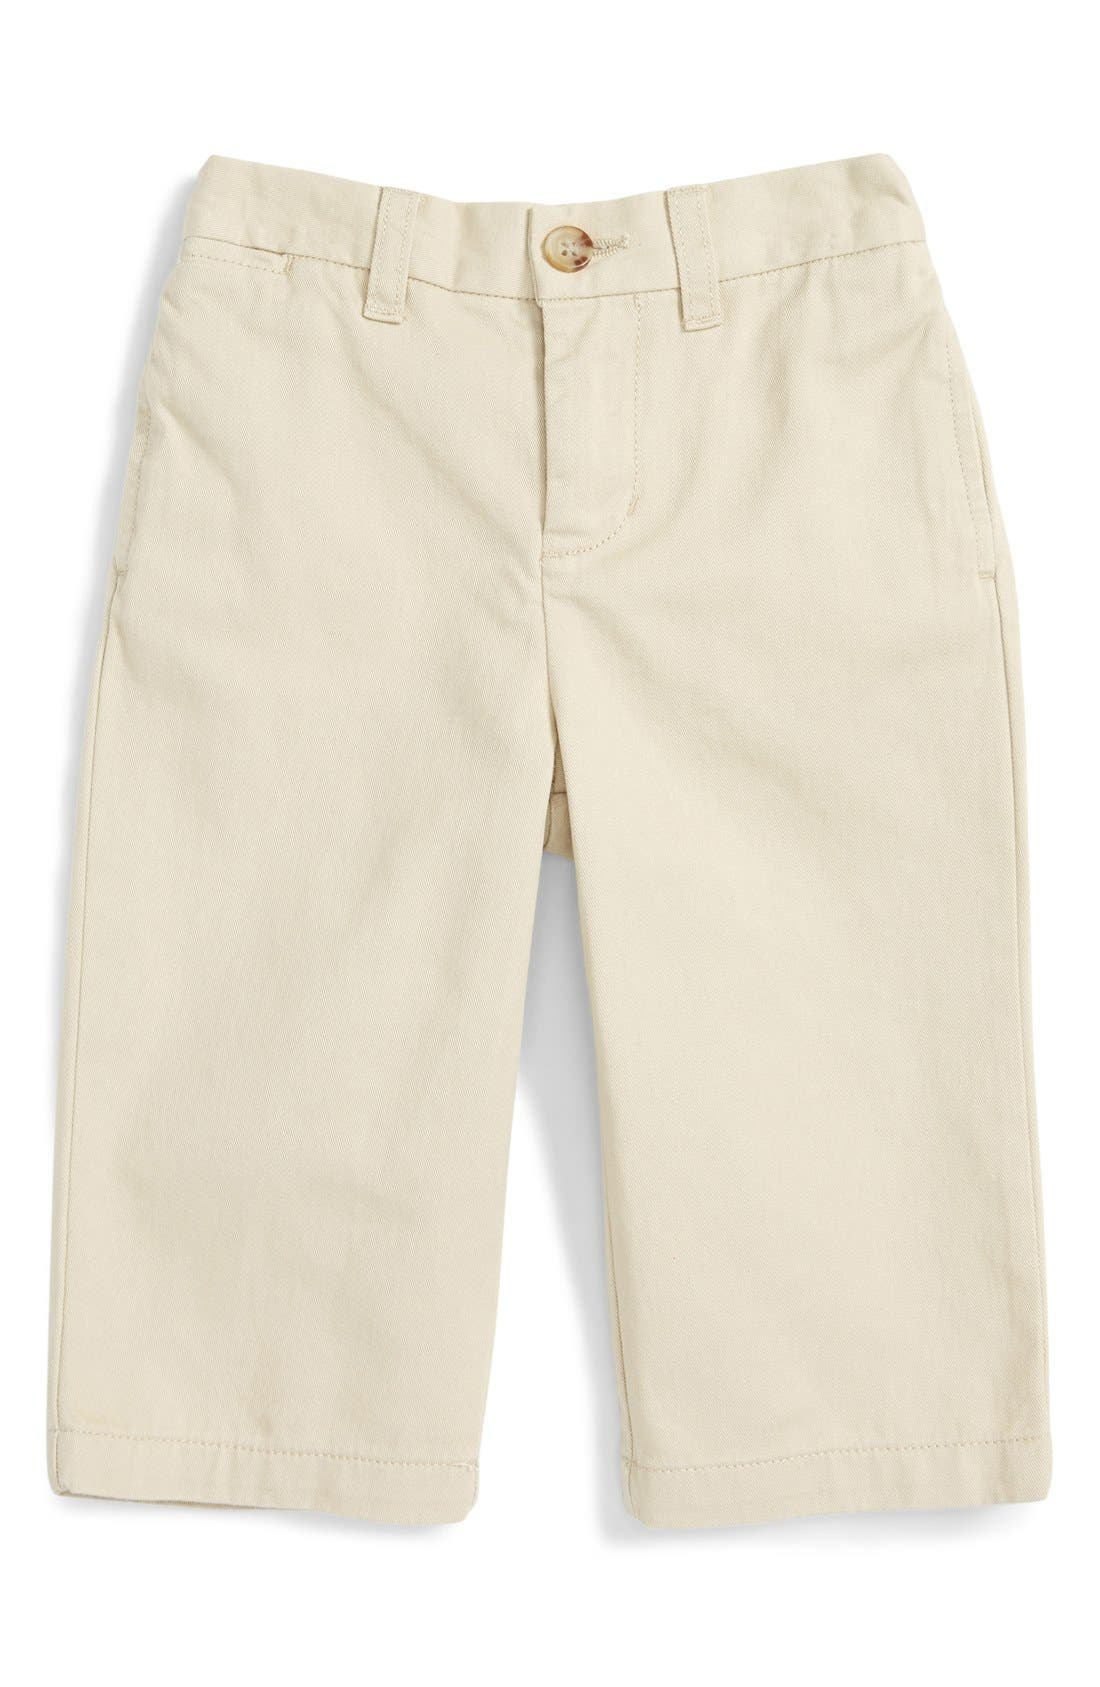 Alternate Image 1 Selected - Ralph Lauren 'Suffield' Chino Pants (Baby Boys)